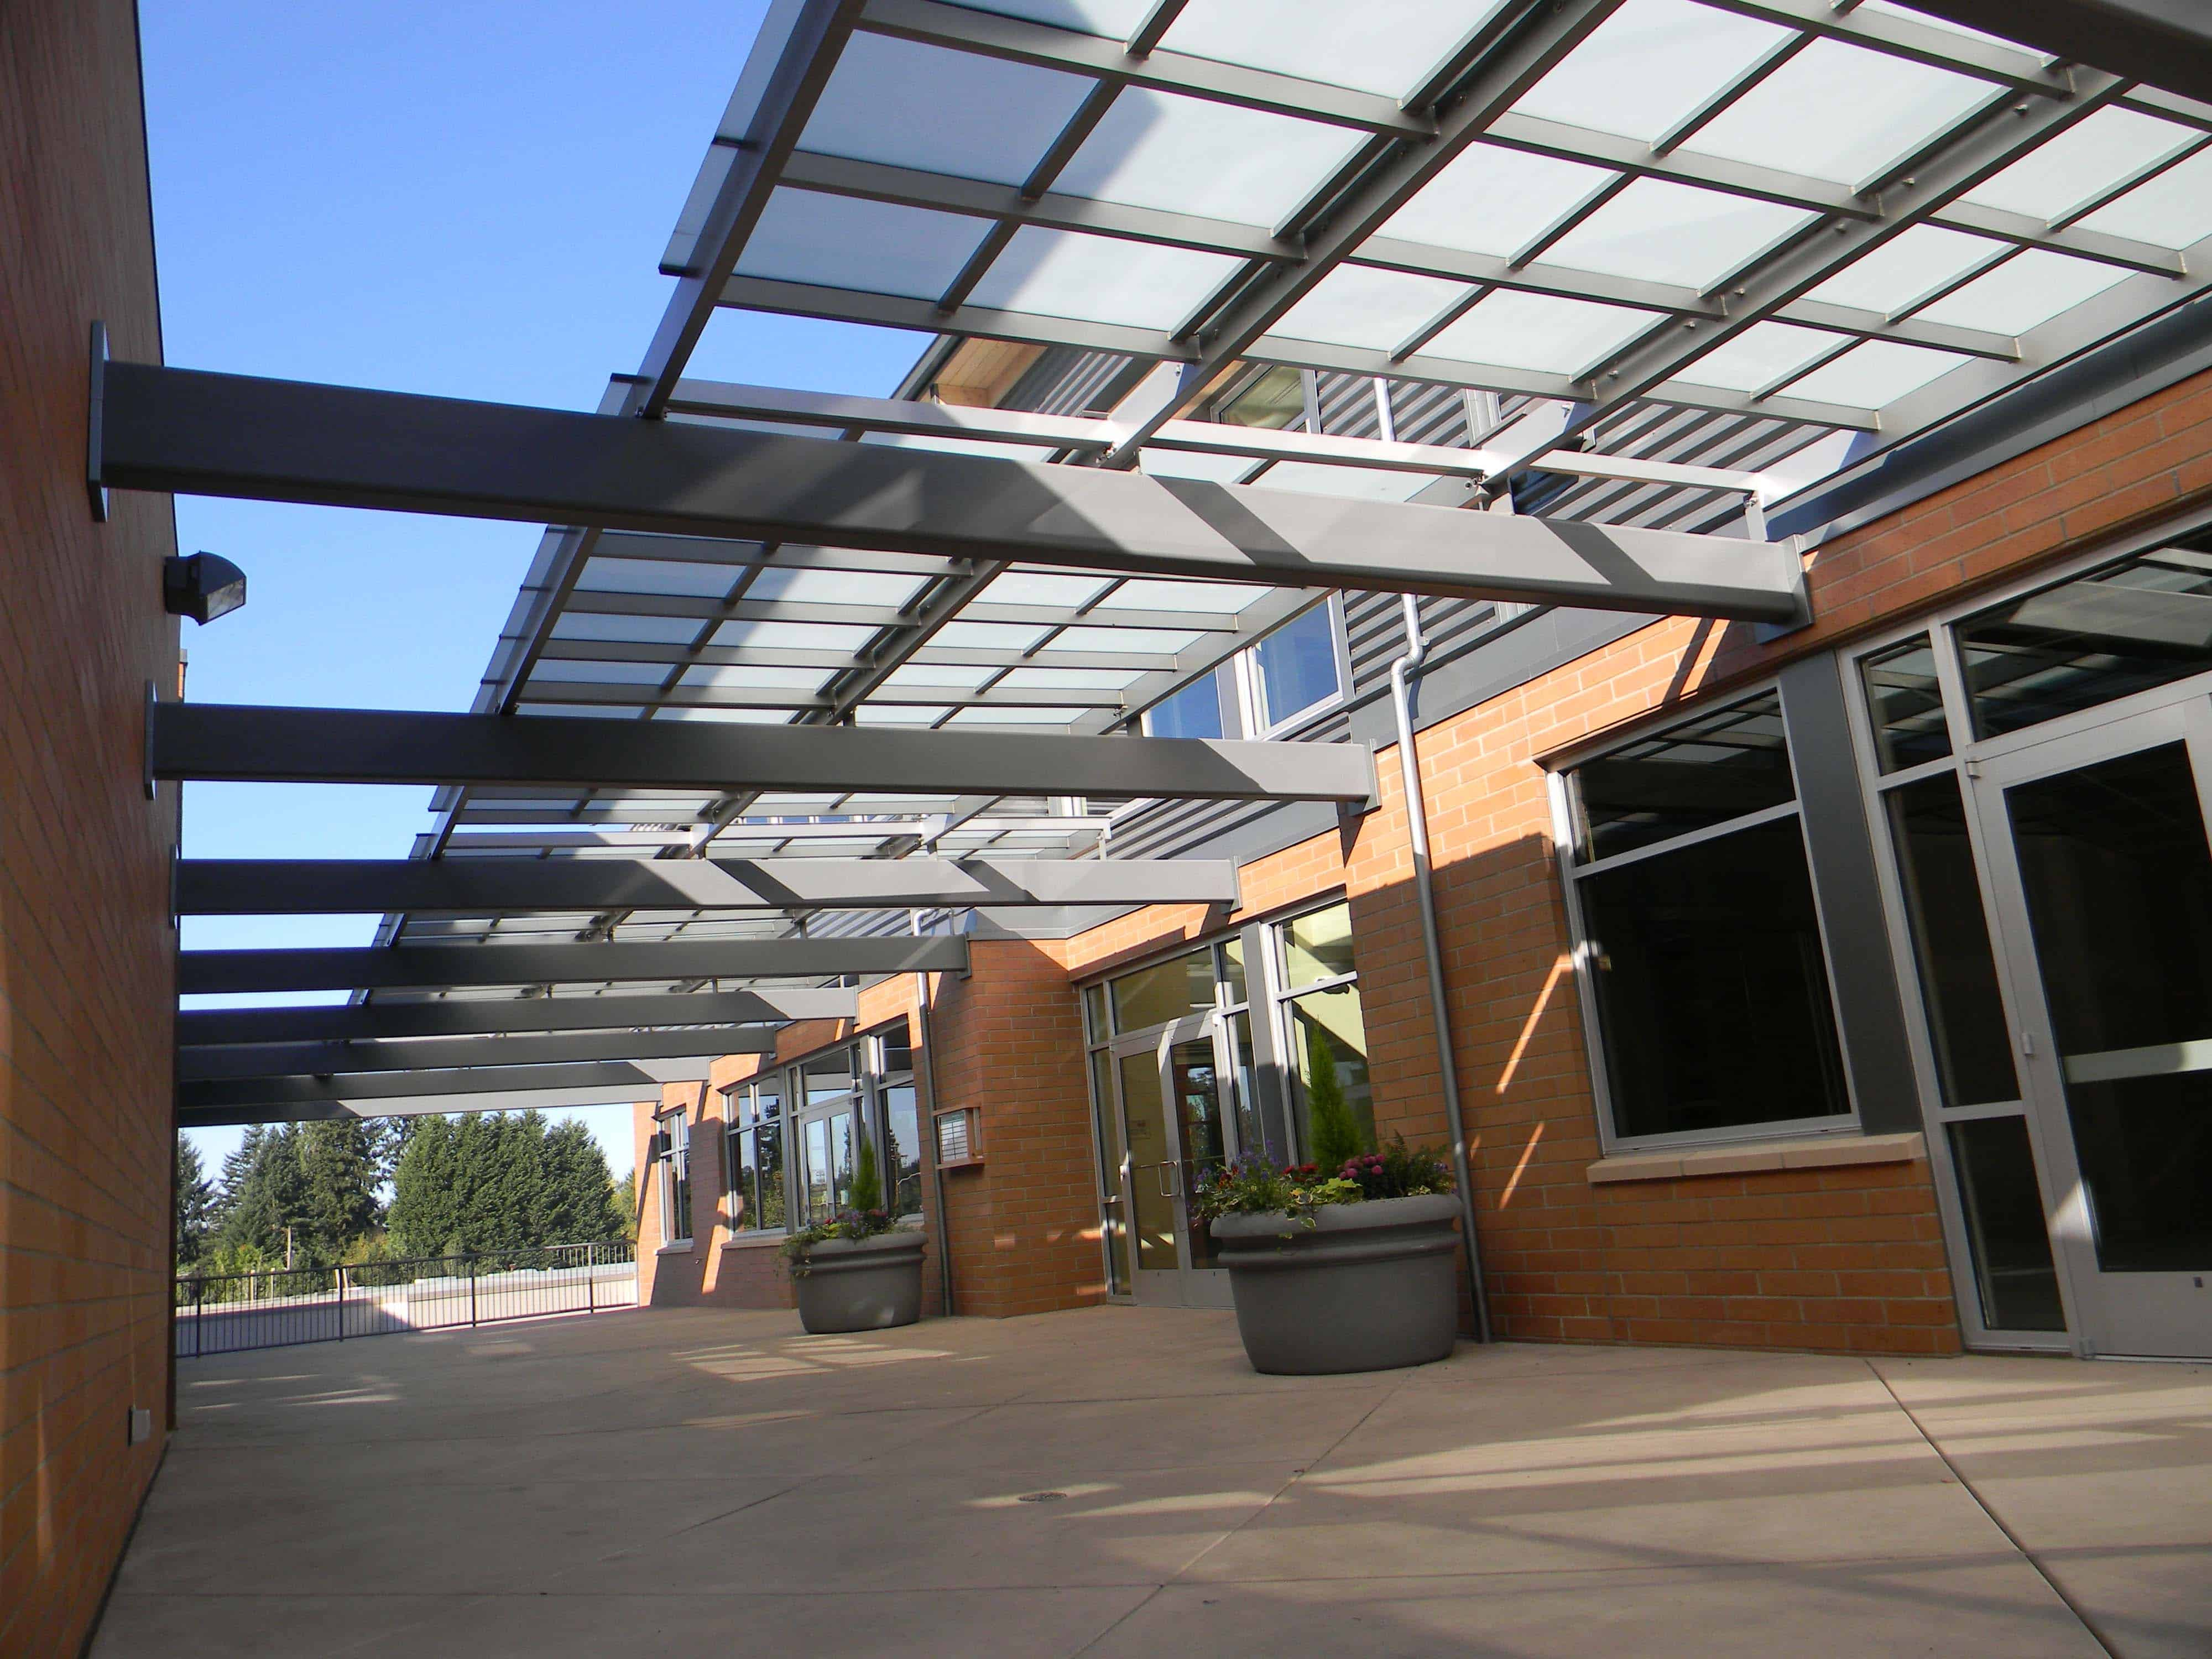 Breezeway Canopy with Etched Frit Glass